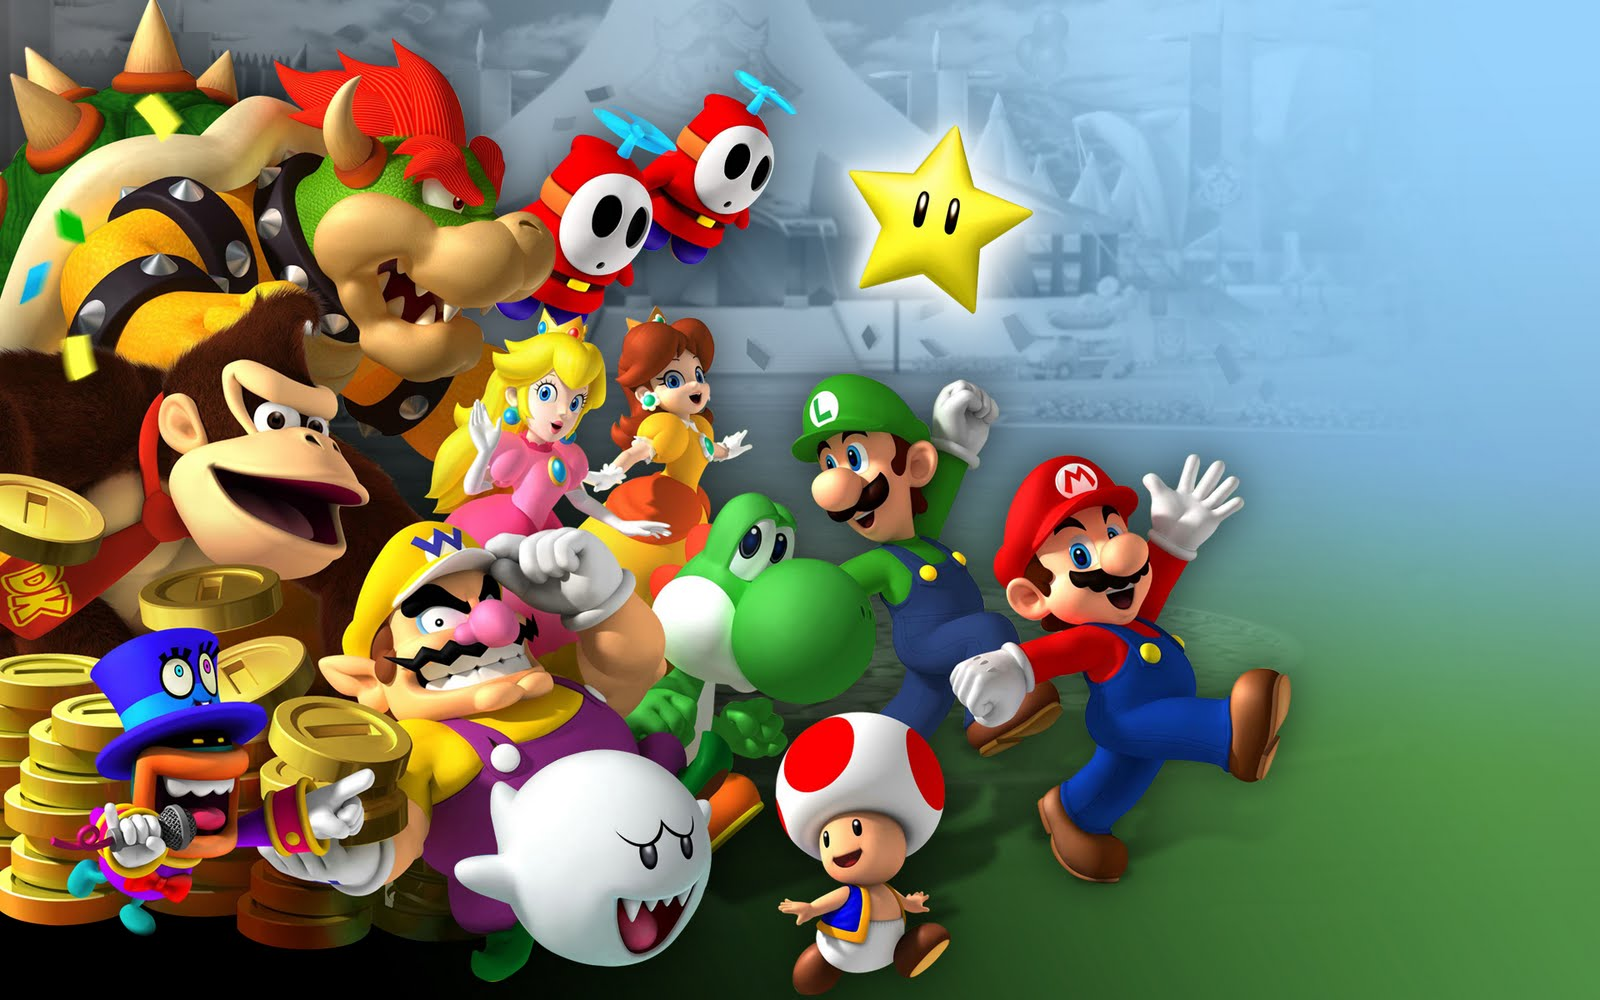 Super Mario Game Wallpapers   HD Backgrounds 1600x1000